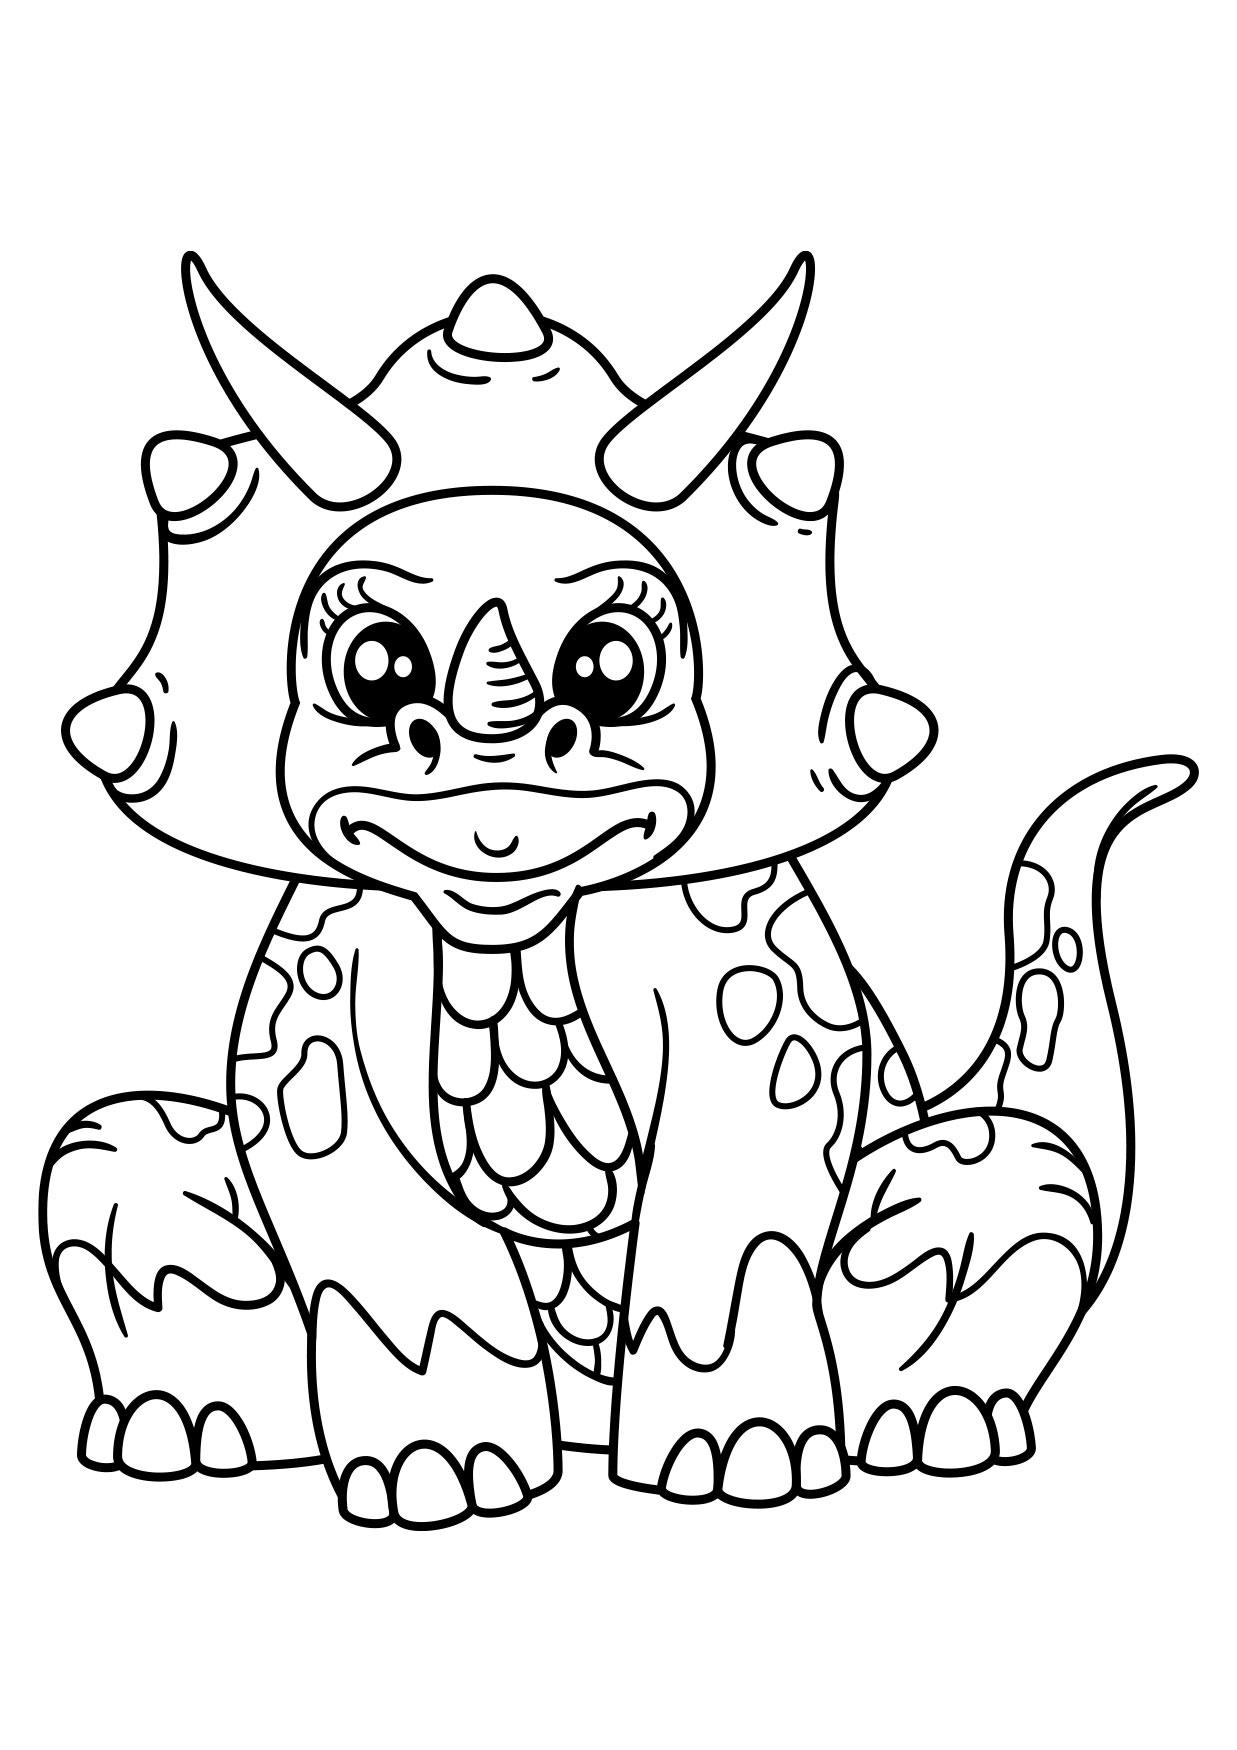 girl dinosaur coloring pages search results for dinosaur coloring pages on getcolorings coloring pages girl dinosaur